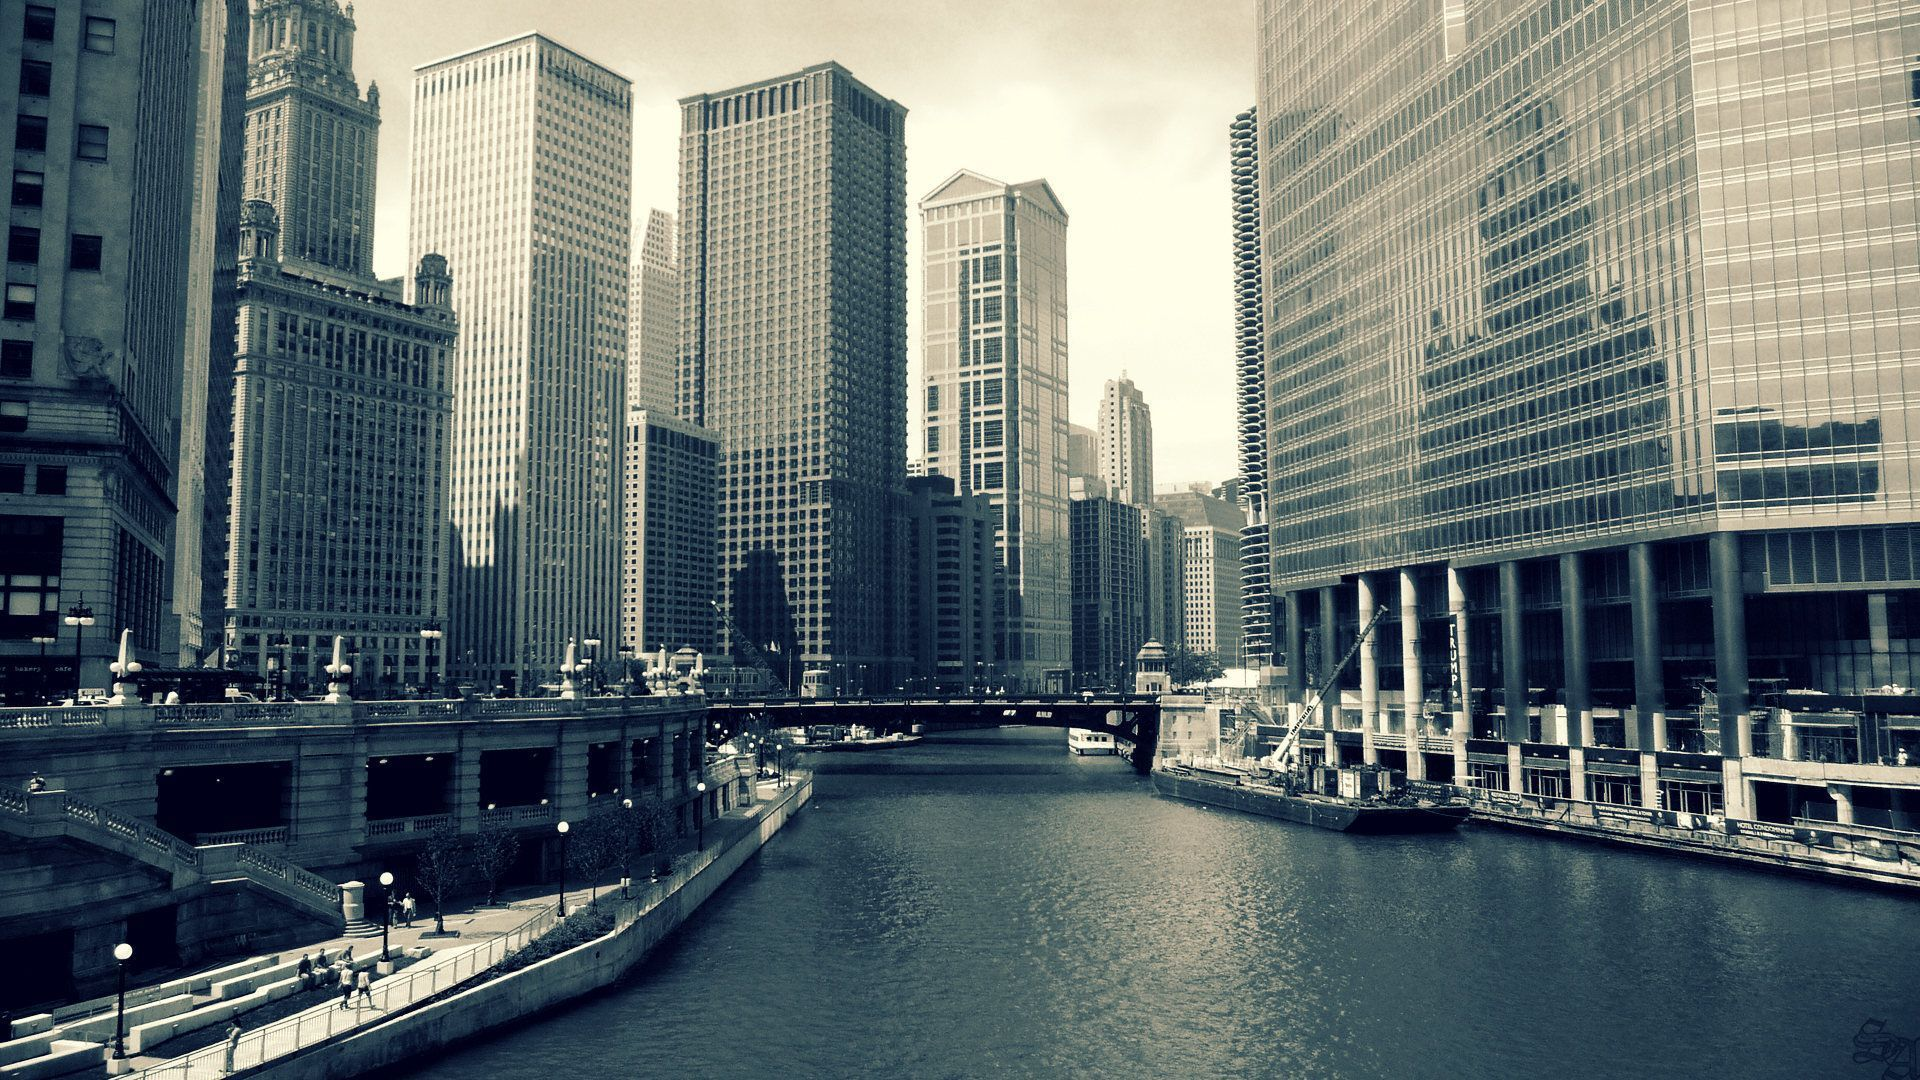 Chicago Wallpaper Hd For Desktop Wallpaper 1920 x 1080 px